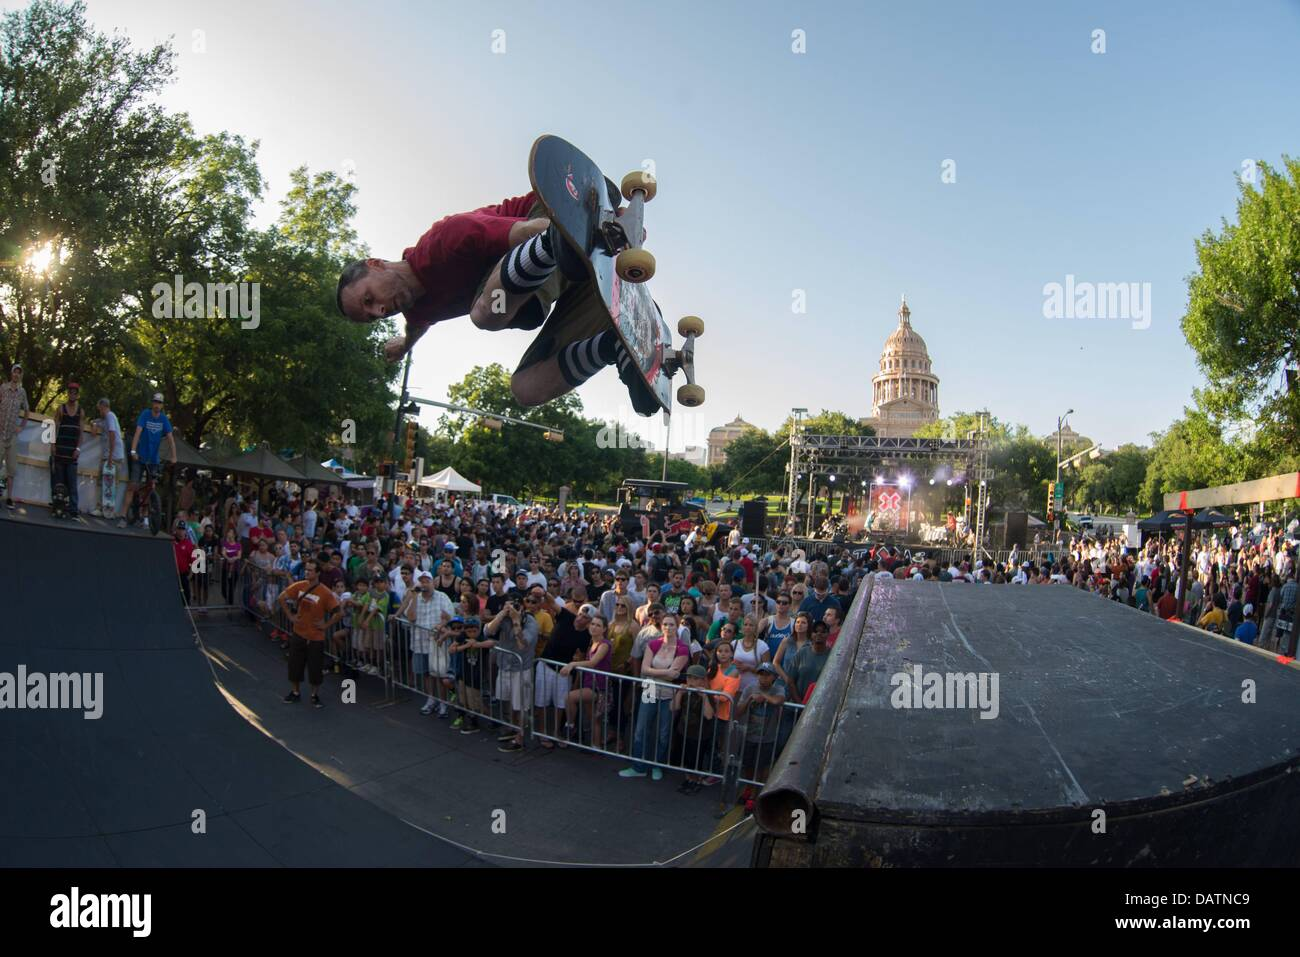 June 5, 2013 - Skateboarder CORY THORNHILLfrontside airs during a bid to host the summer X Games outside the State - Stock Image